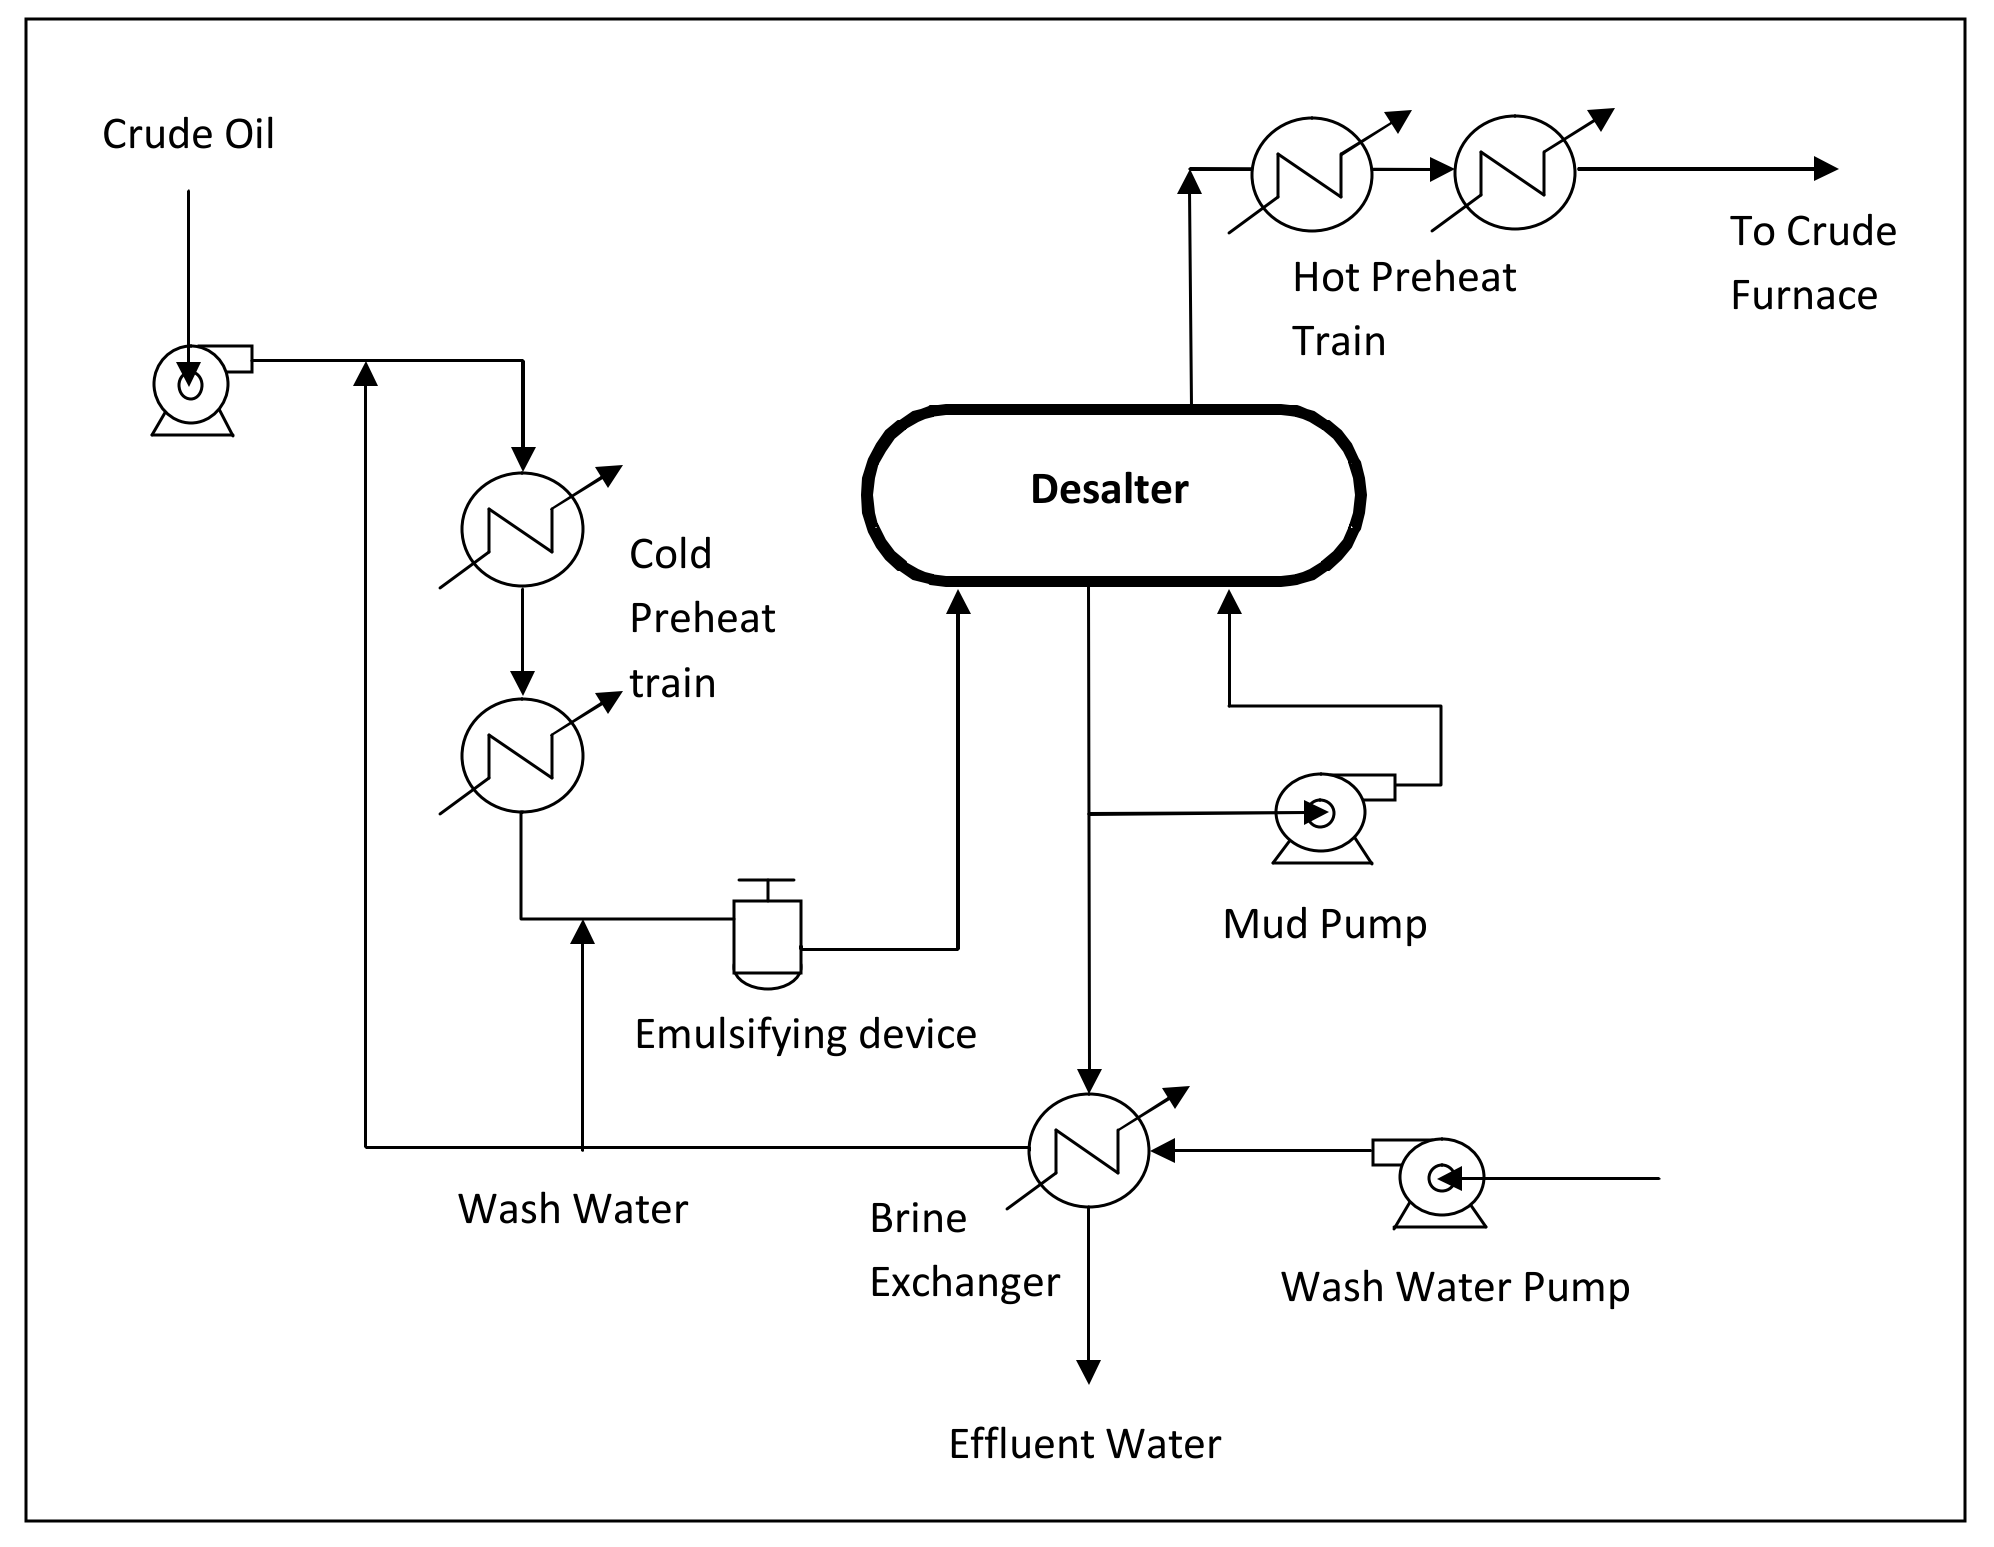 Desalting of crude oil in refinery - EnggCyclopedia